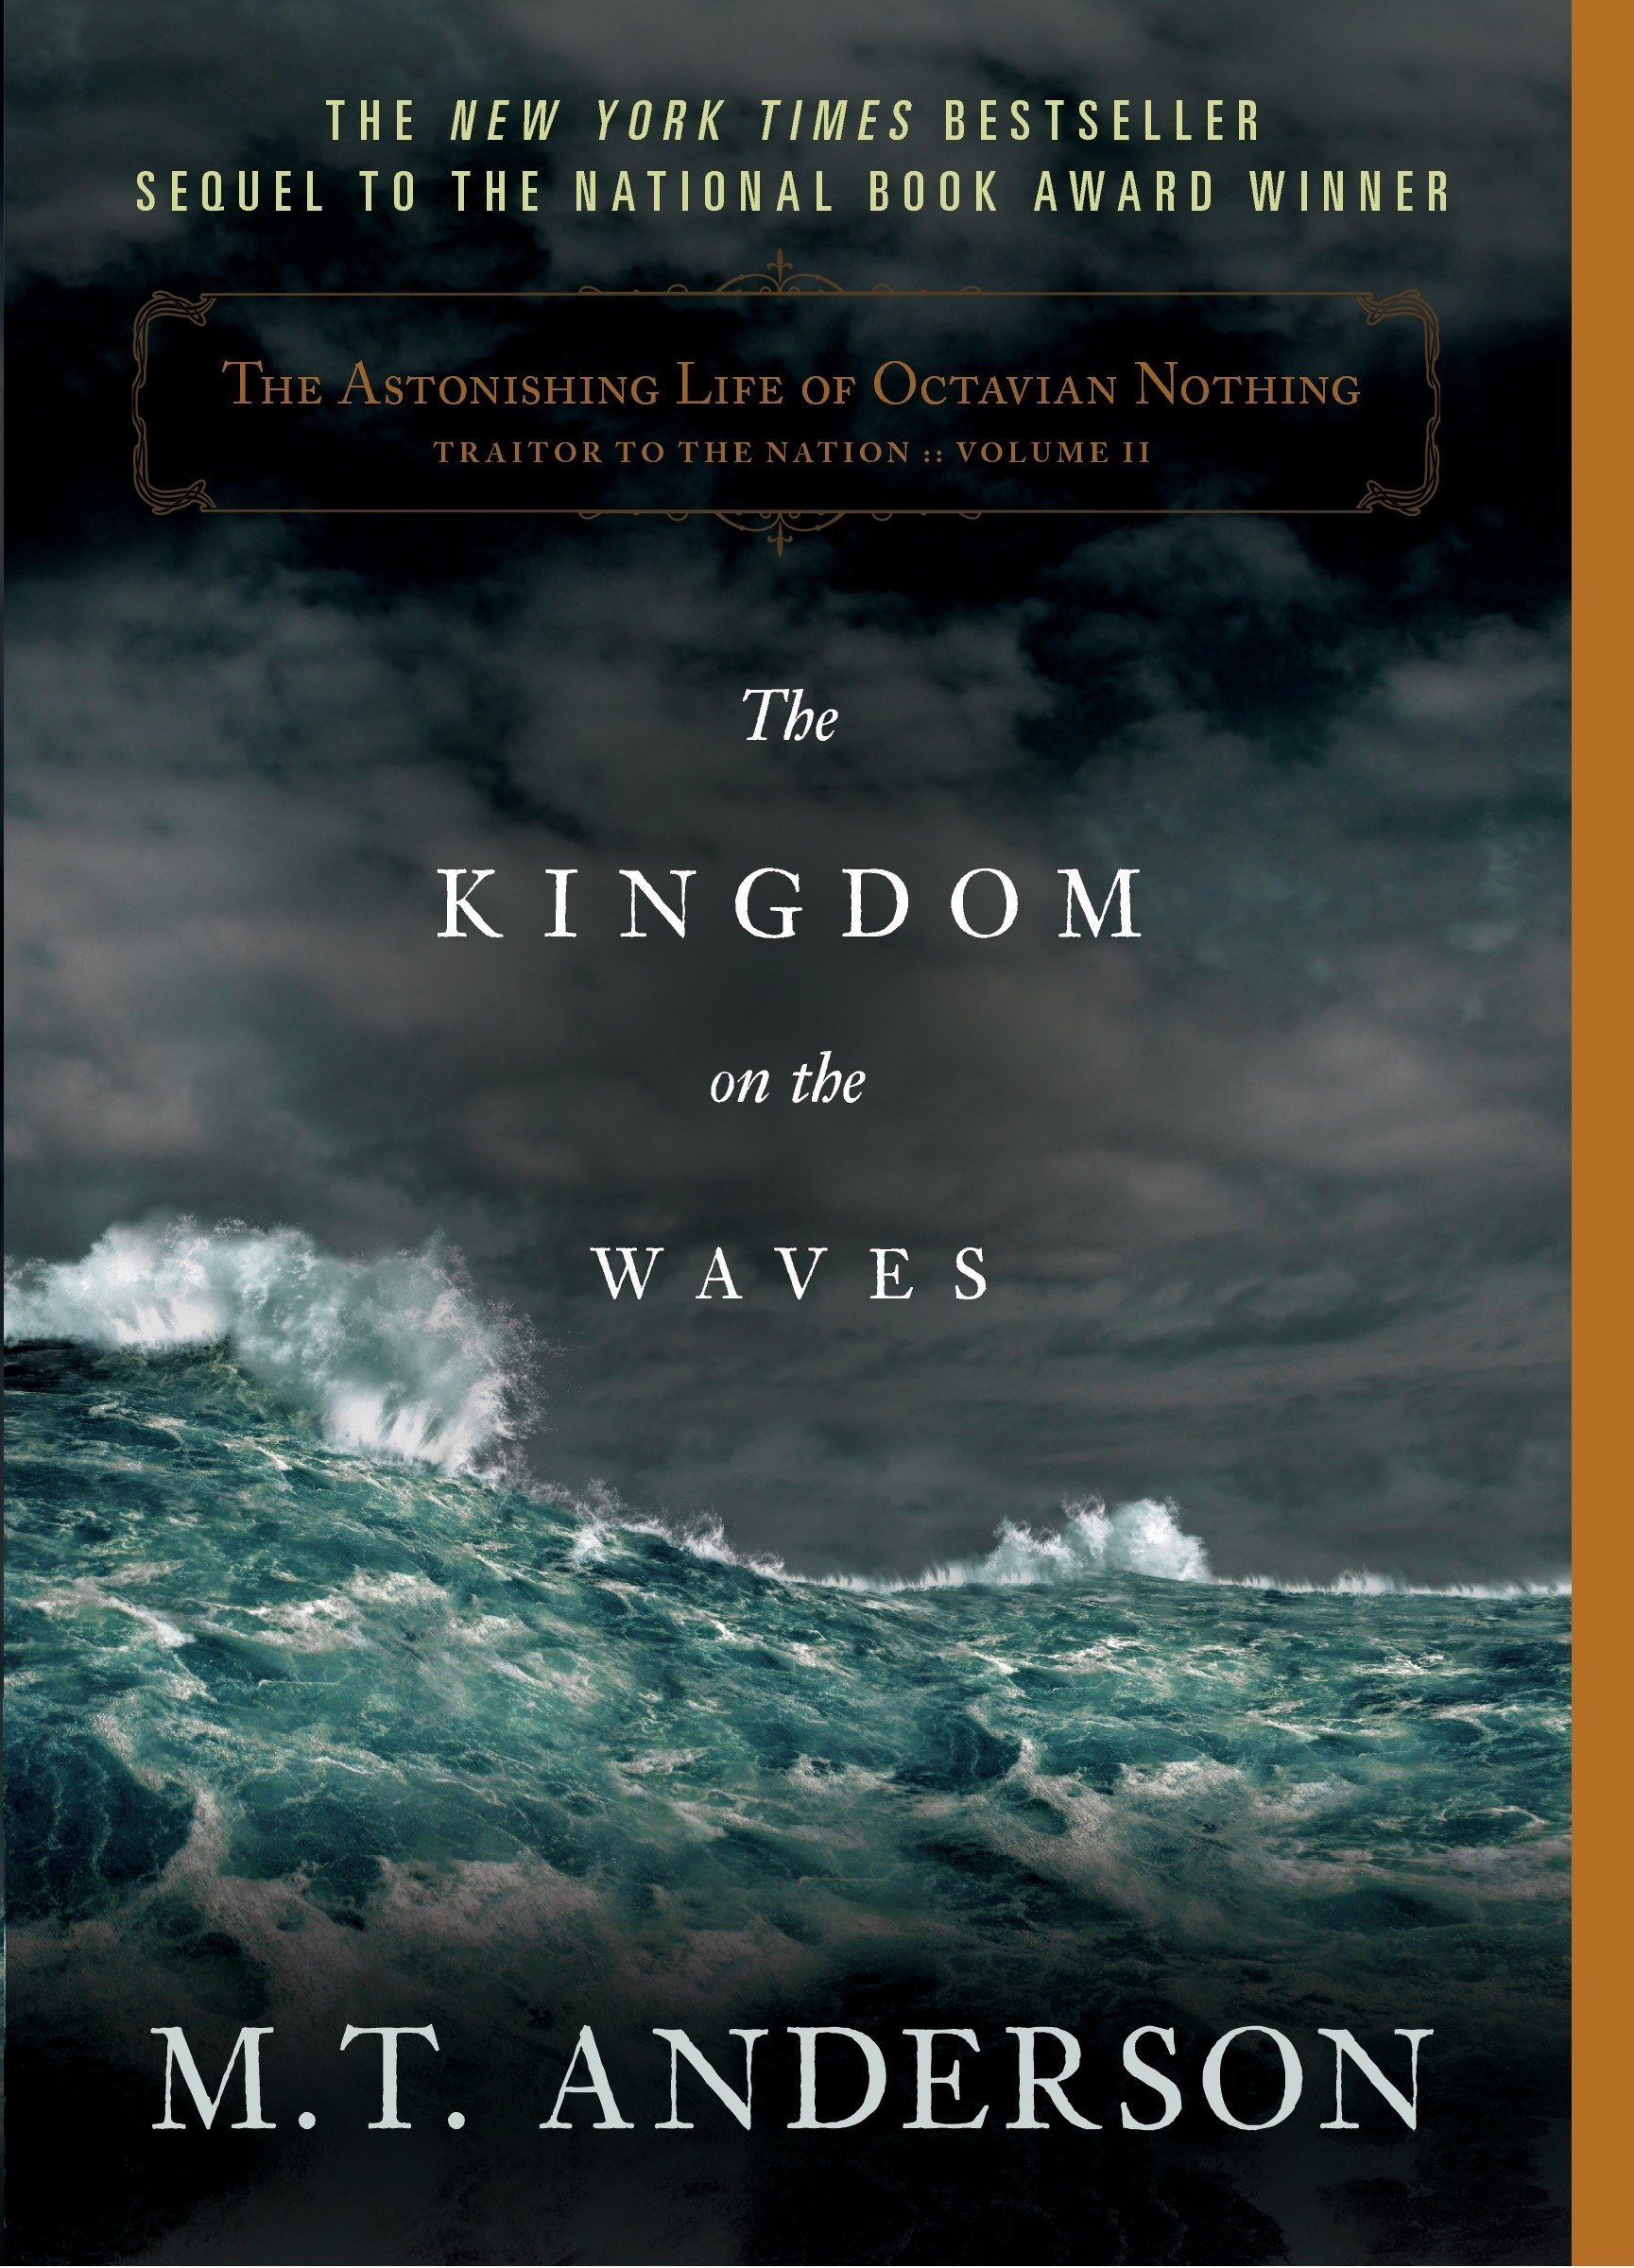 Amazon.com: The Astonishing Life of Octavian Nothing, Traitor to the Nation,  Volume II: The Kingdom on the Waves (9780763653774): M.T. Anderson: Books